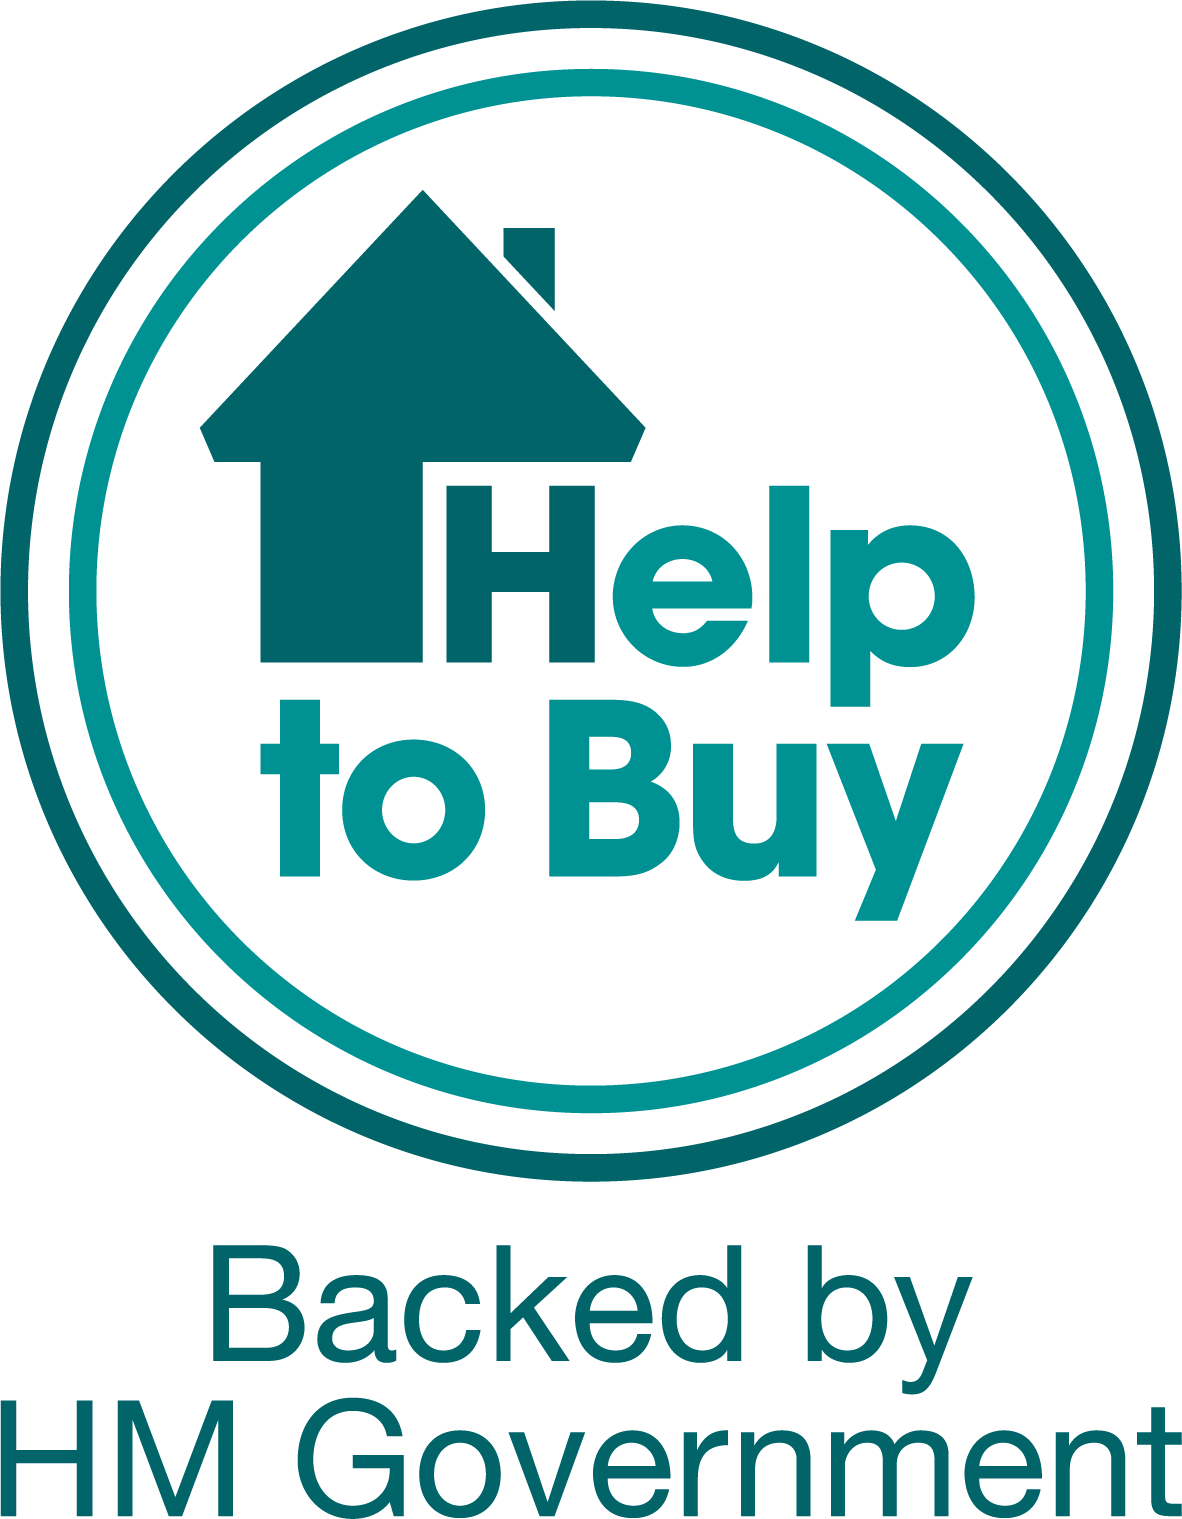 Help to Buy - Backed by HM Government